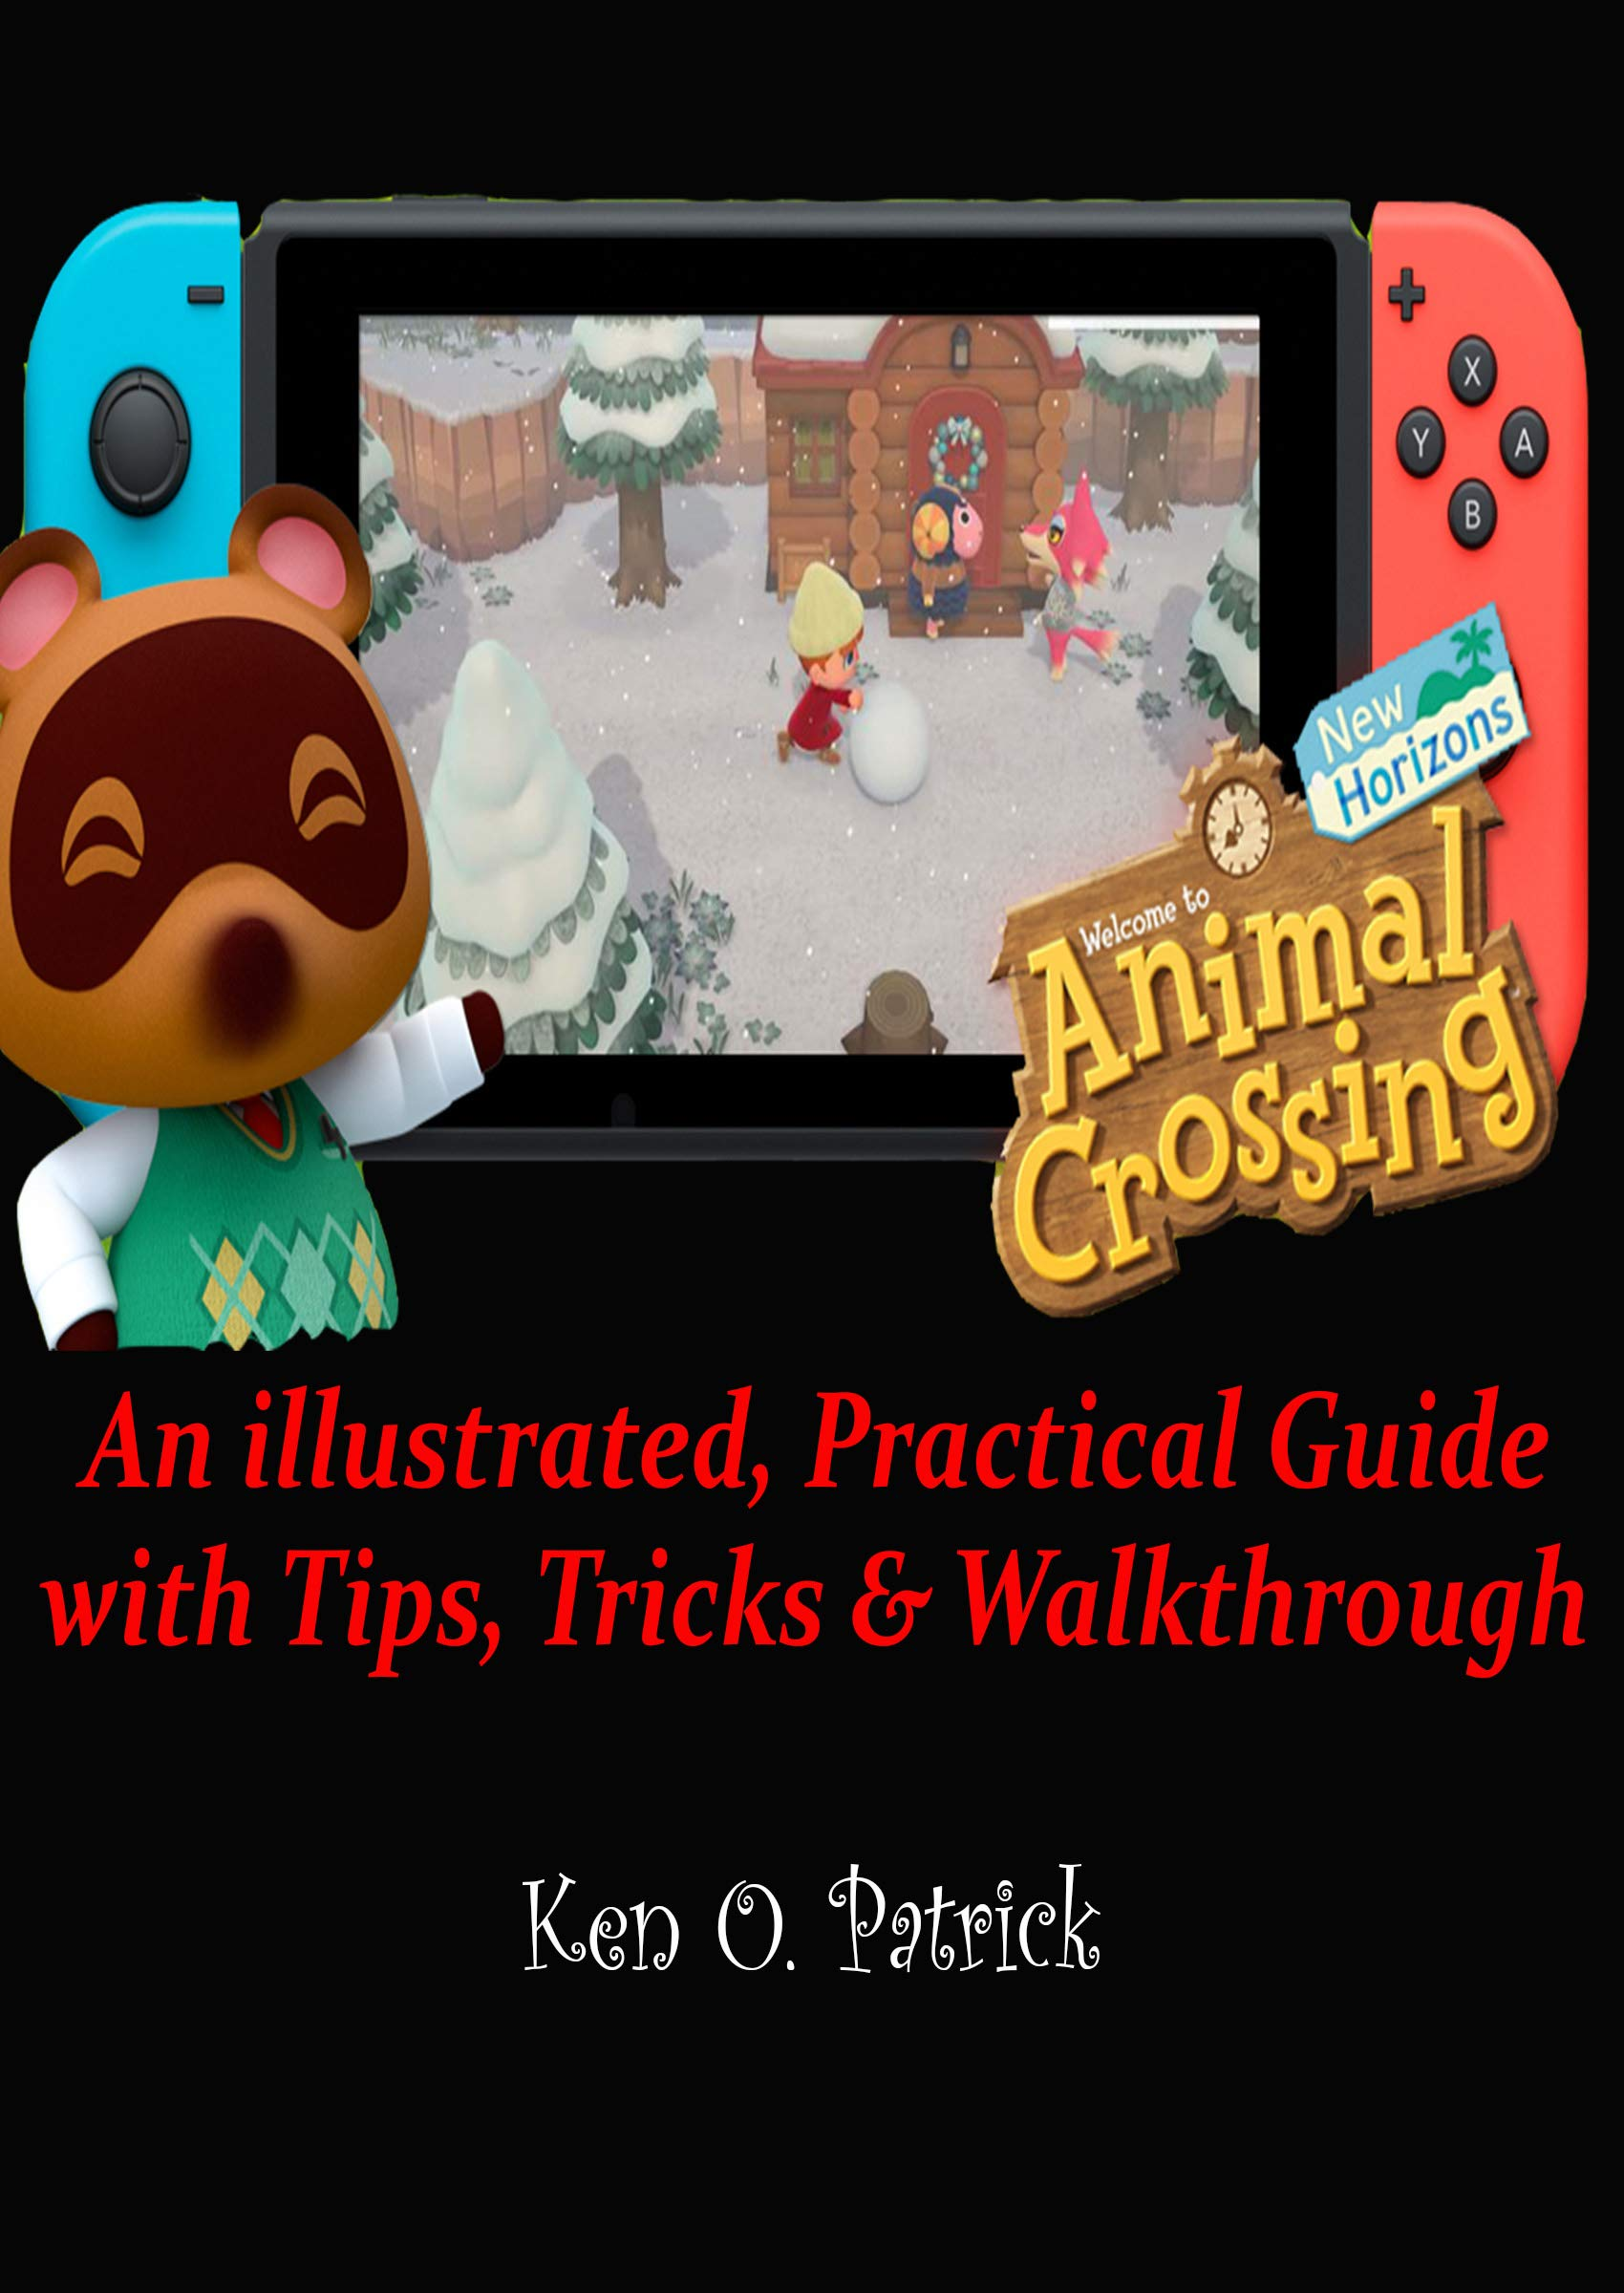 Beginners Guide to Animal Crossing: New Horizons: An illustrated, Practical Guide with Tips, Tricks & Walkthrough